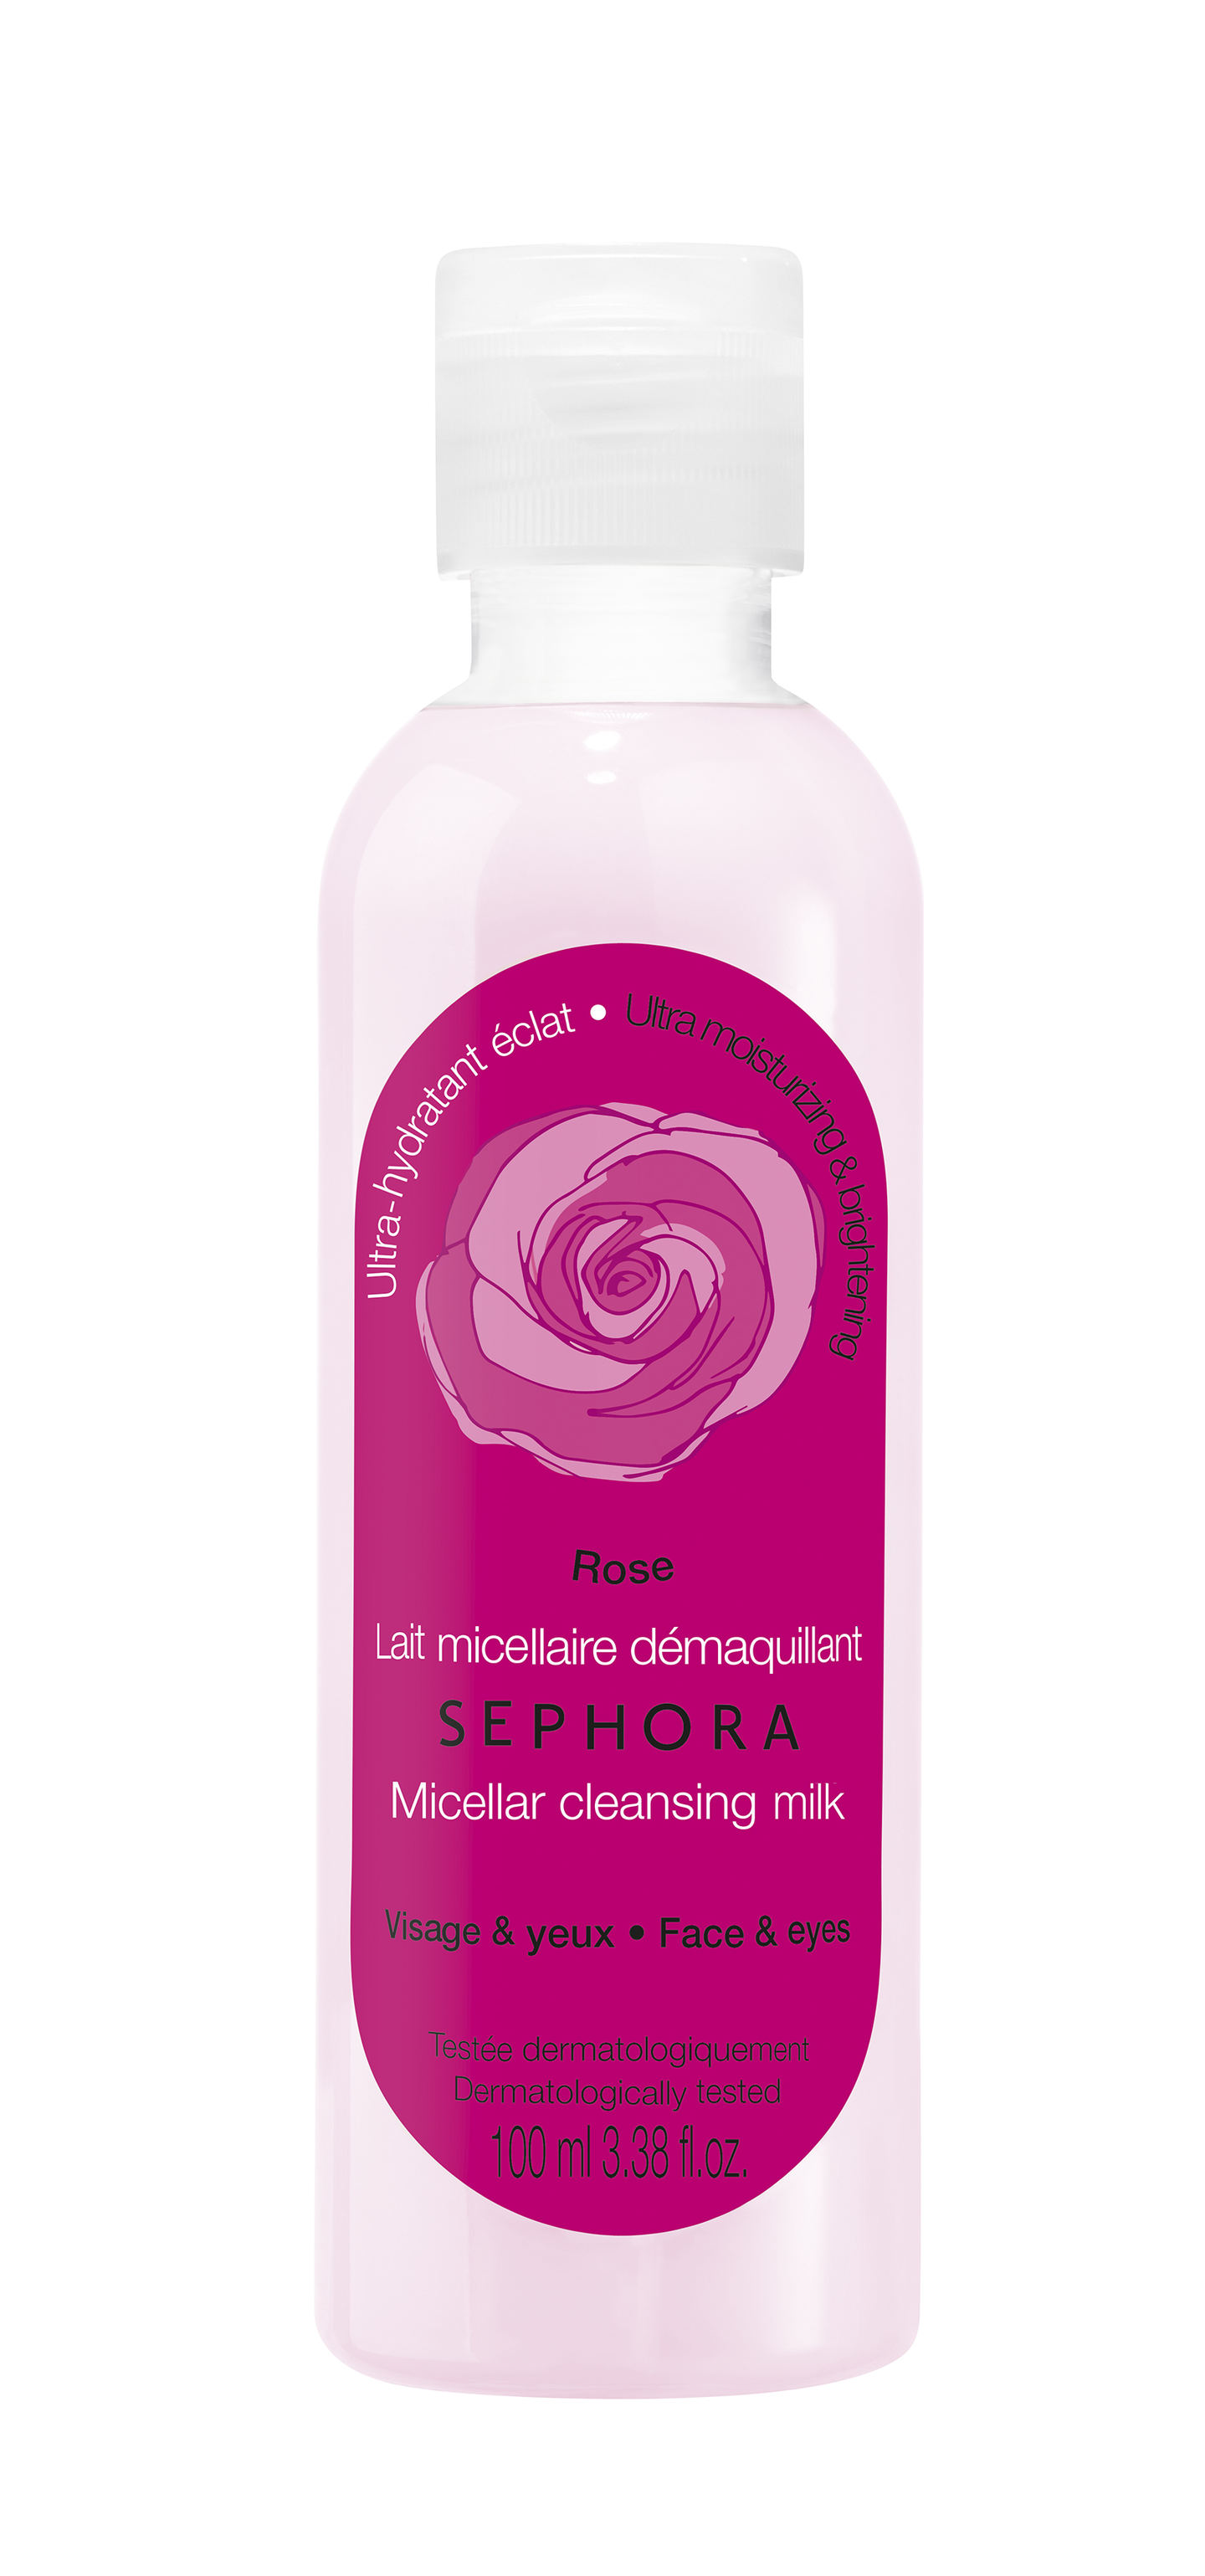 Micellar Cleansing Milk | Made in Sephora